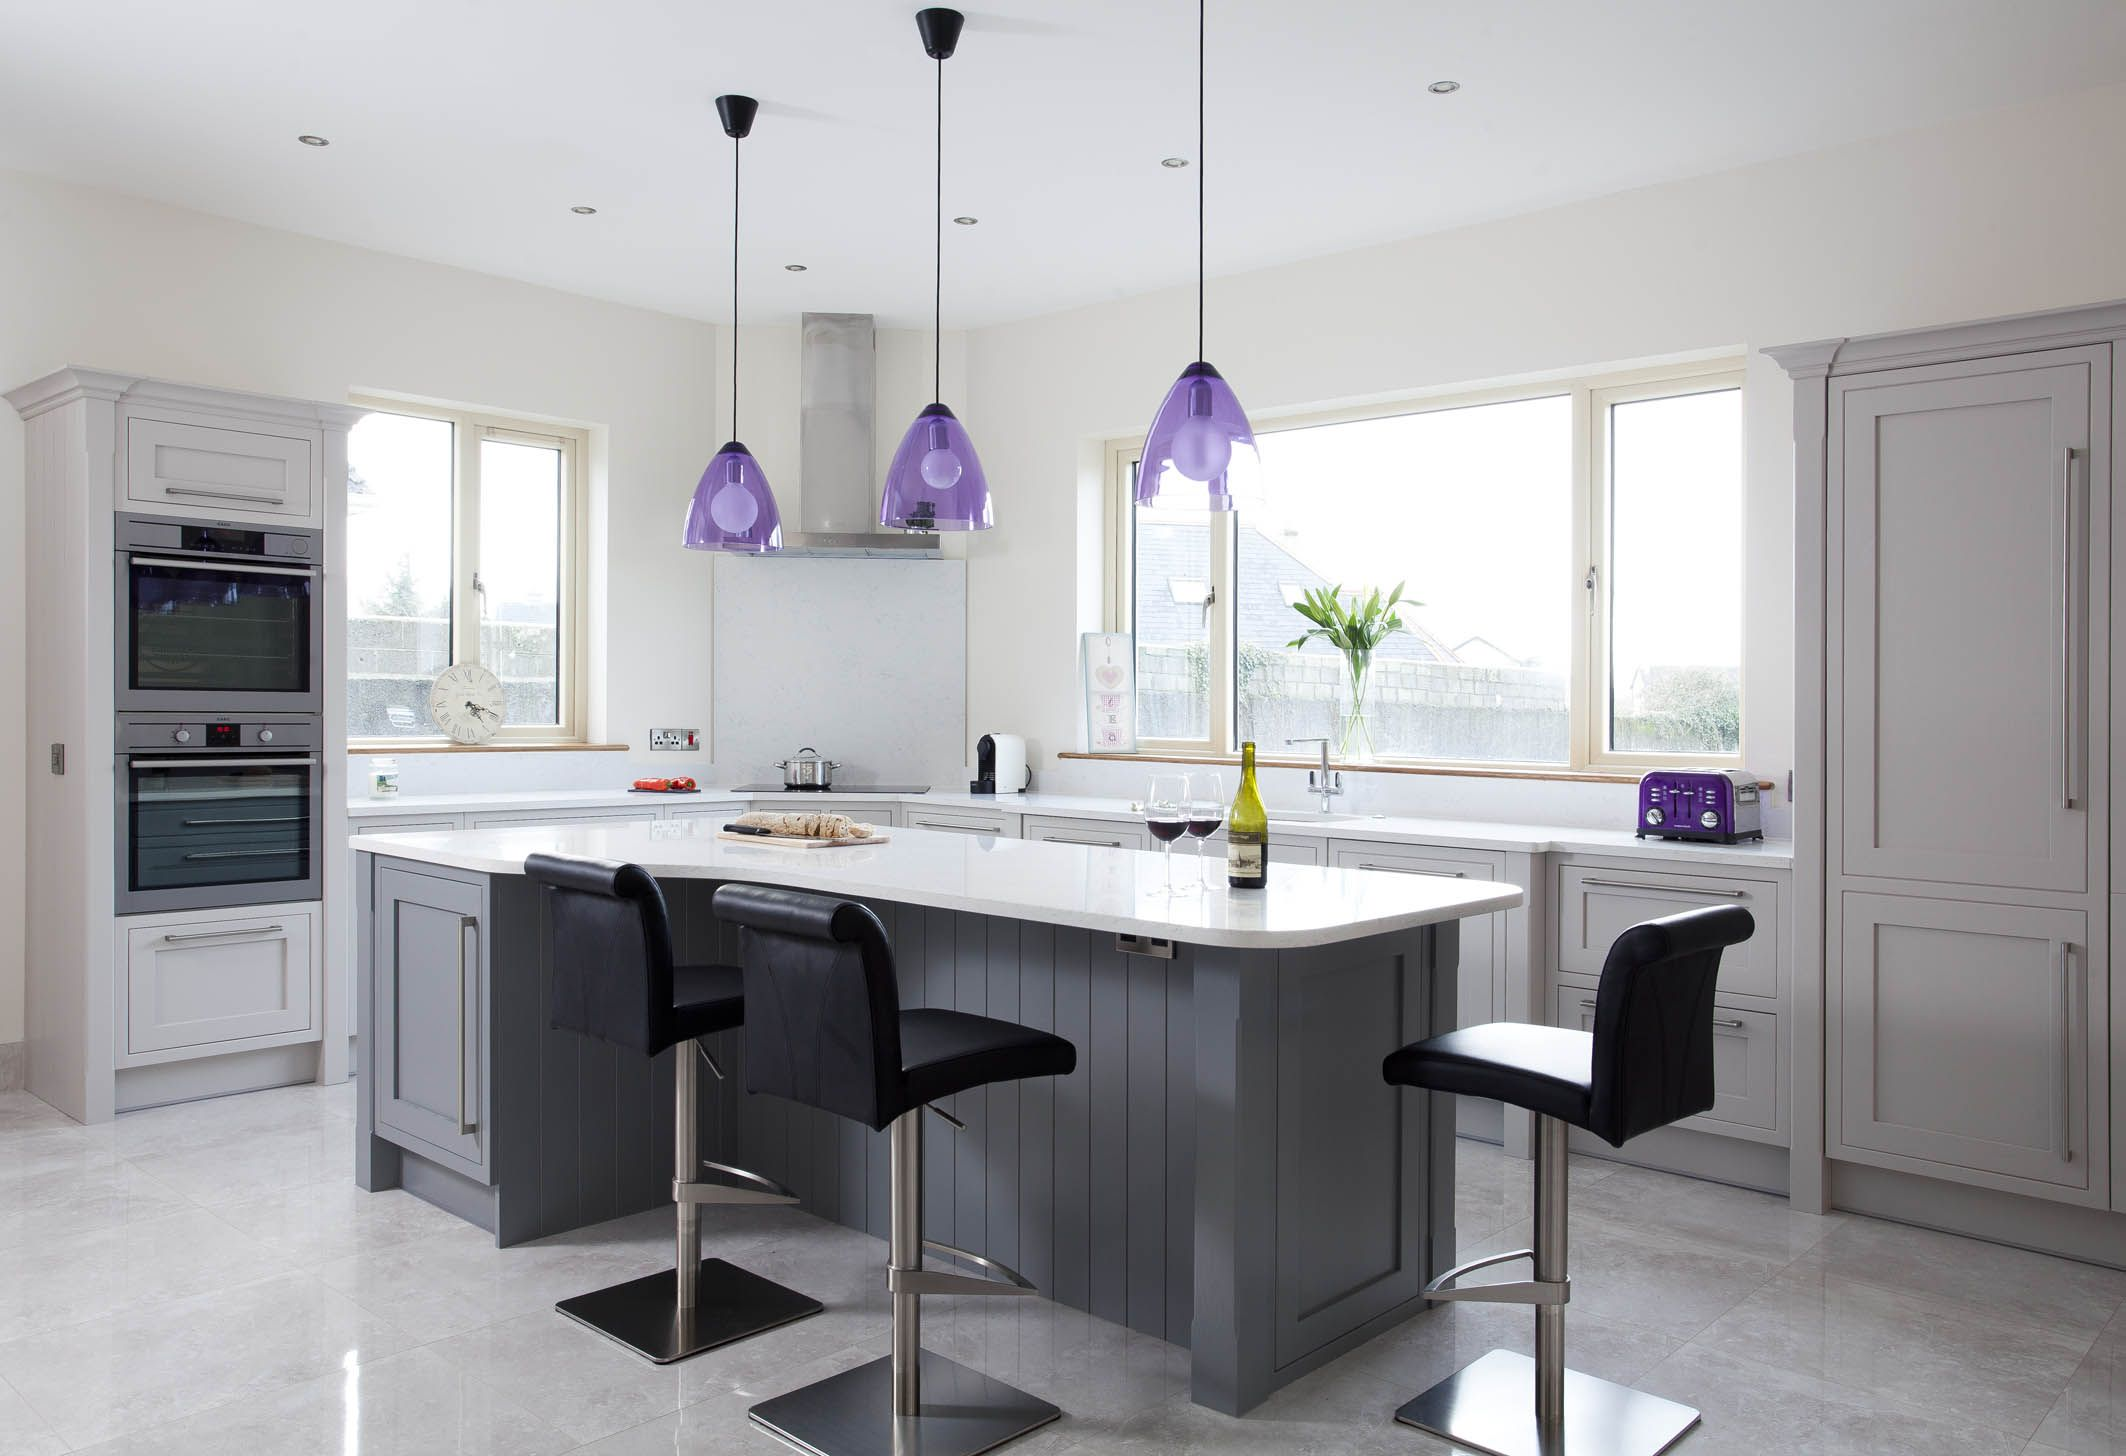 Best Image Result For Kitchens Farrow And Ball Manor House Grey 640 x 480